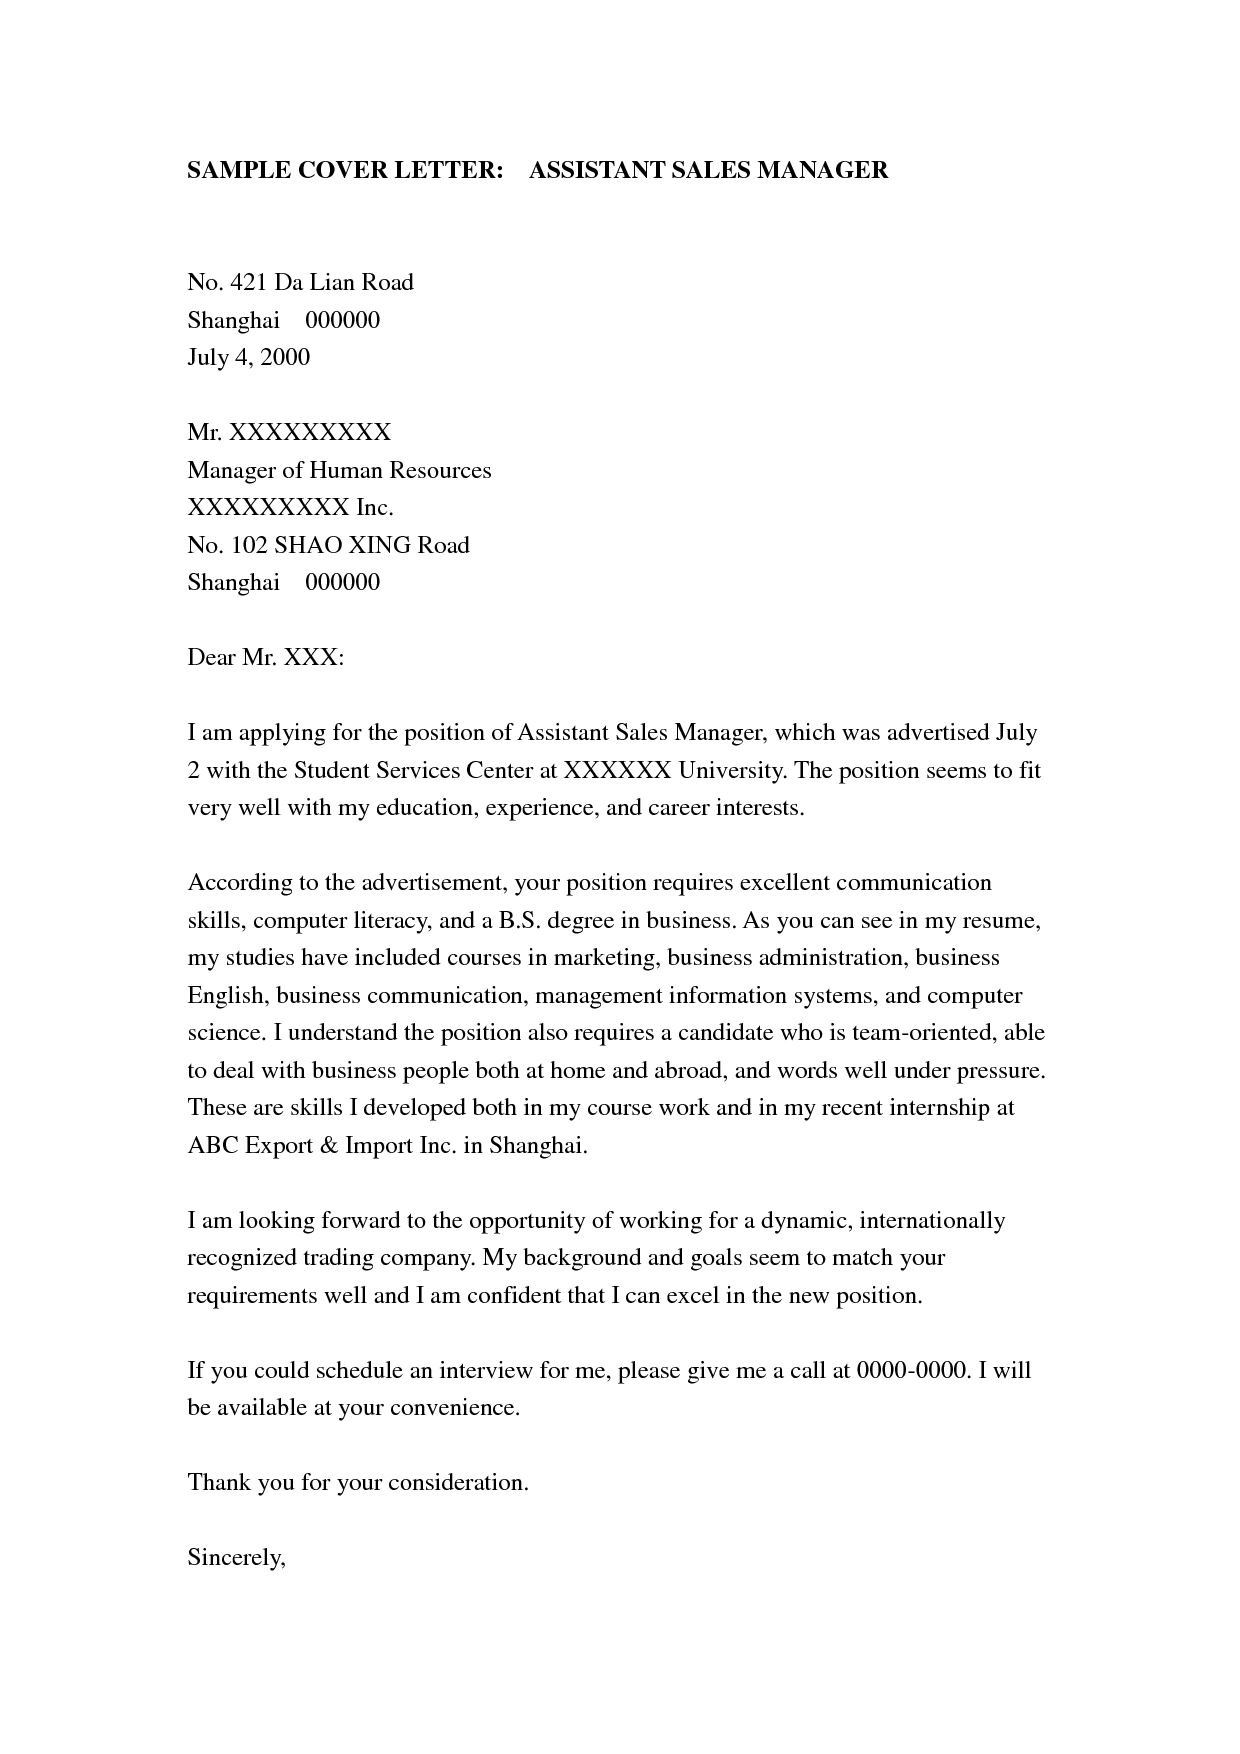 Sample cover letter for job application any position incredible sample cover letter for job application any position incredible supervisor simple letters madrichimfo Gallery